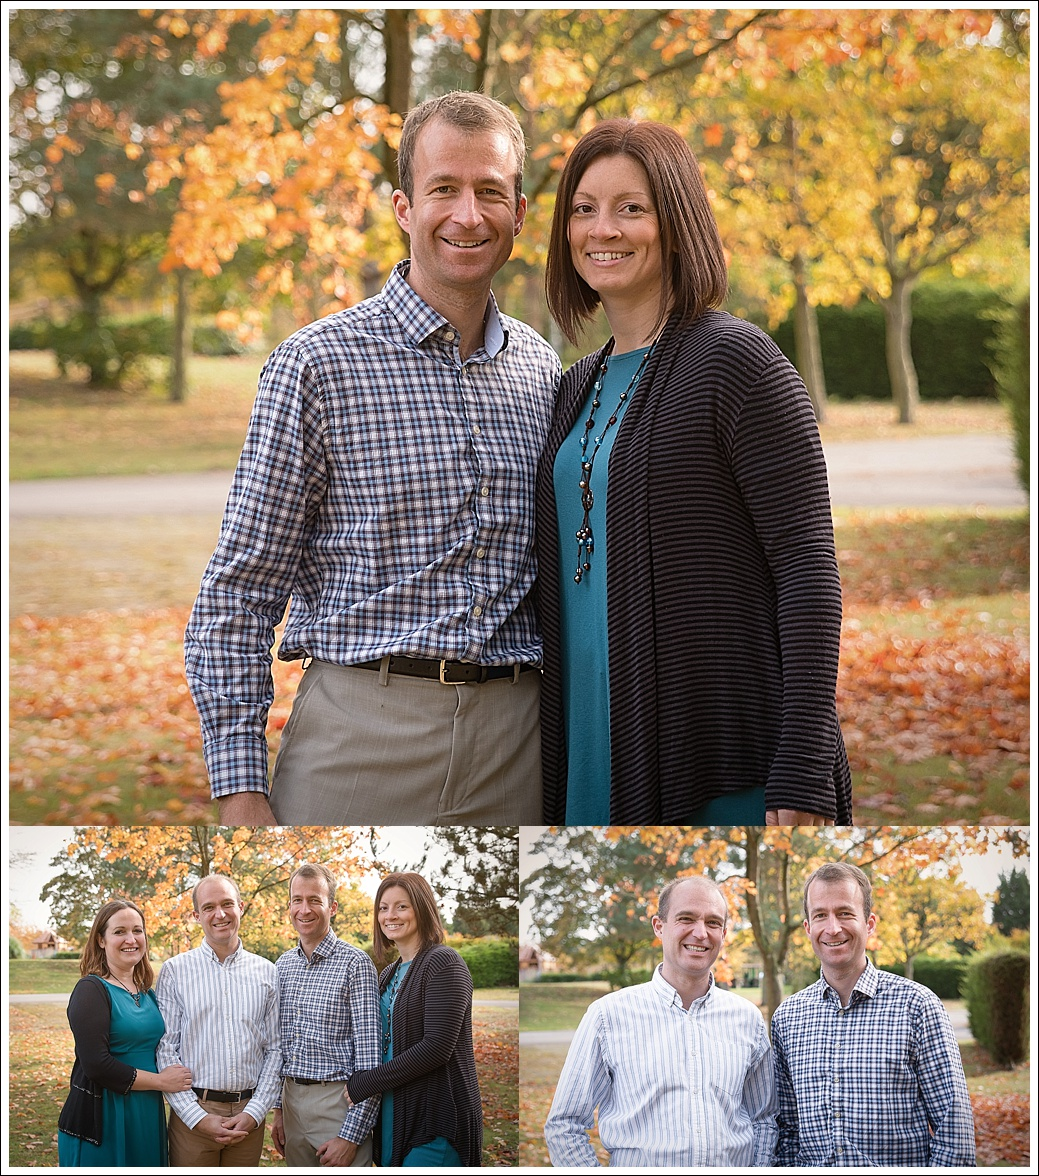 Family photography outdoors in autumn